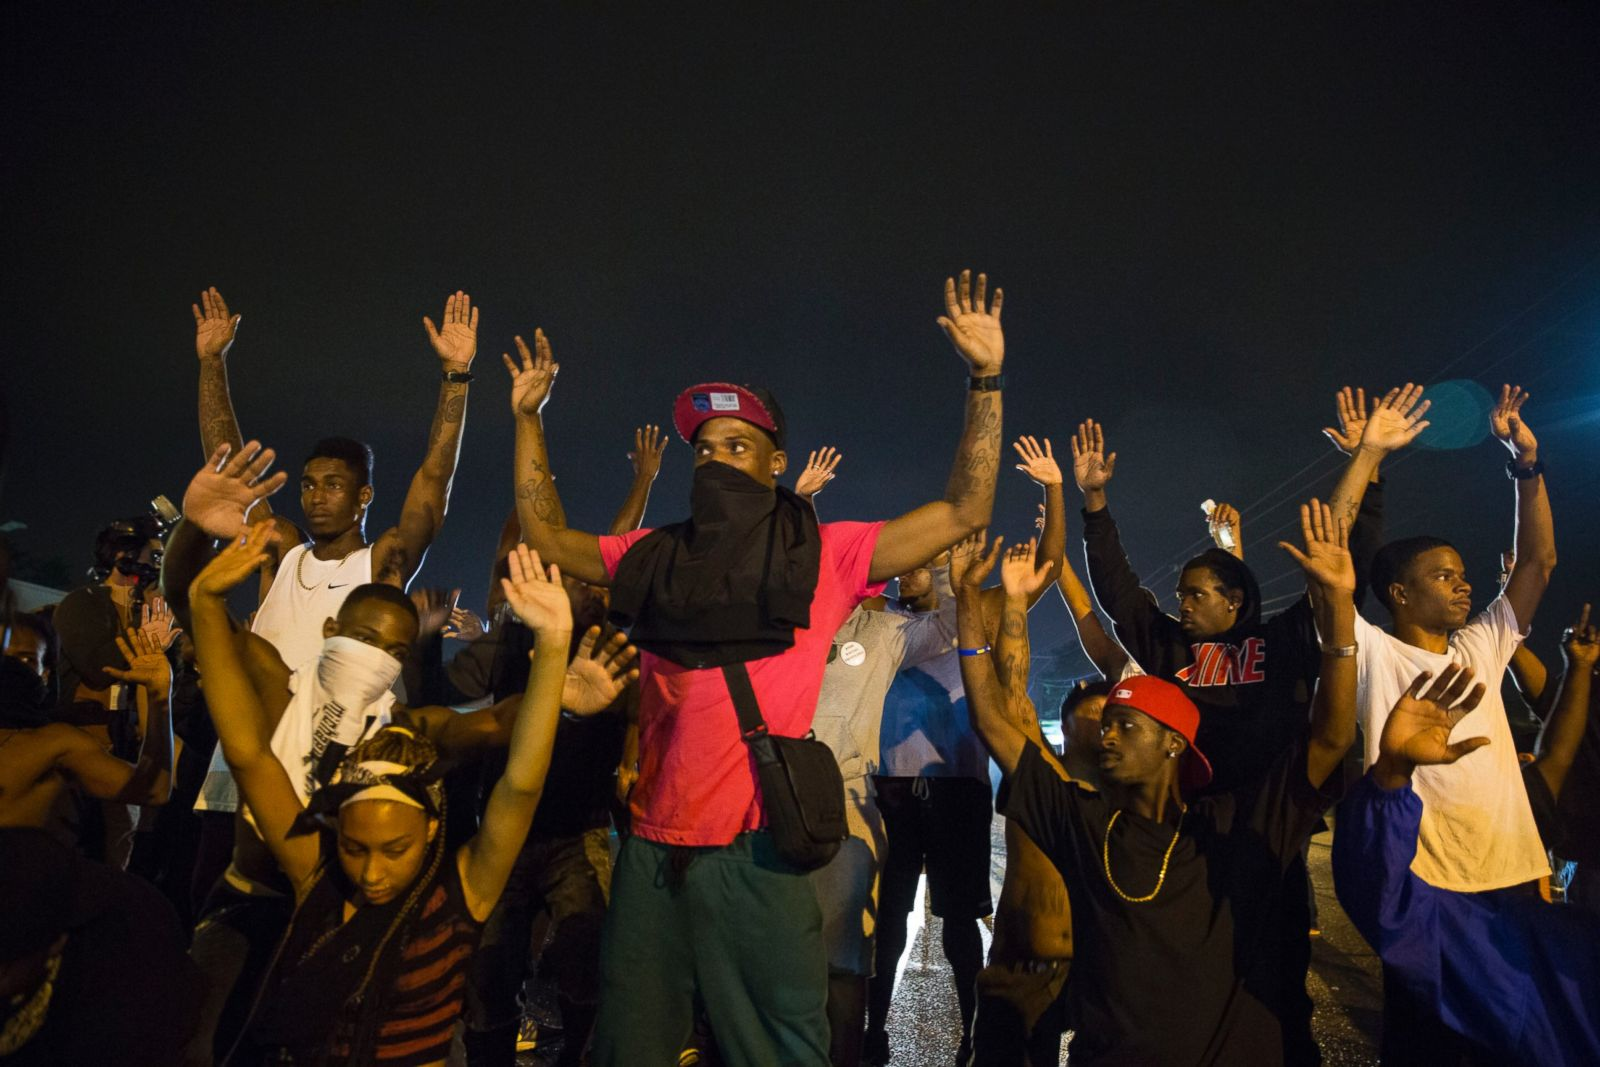 a discussion on the protests in ferguson missouri and in new york city